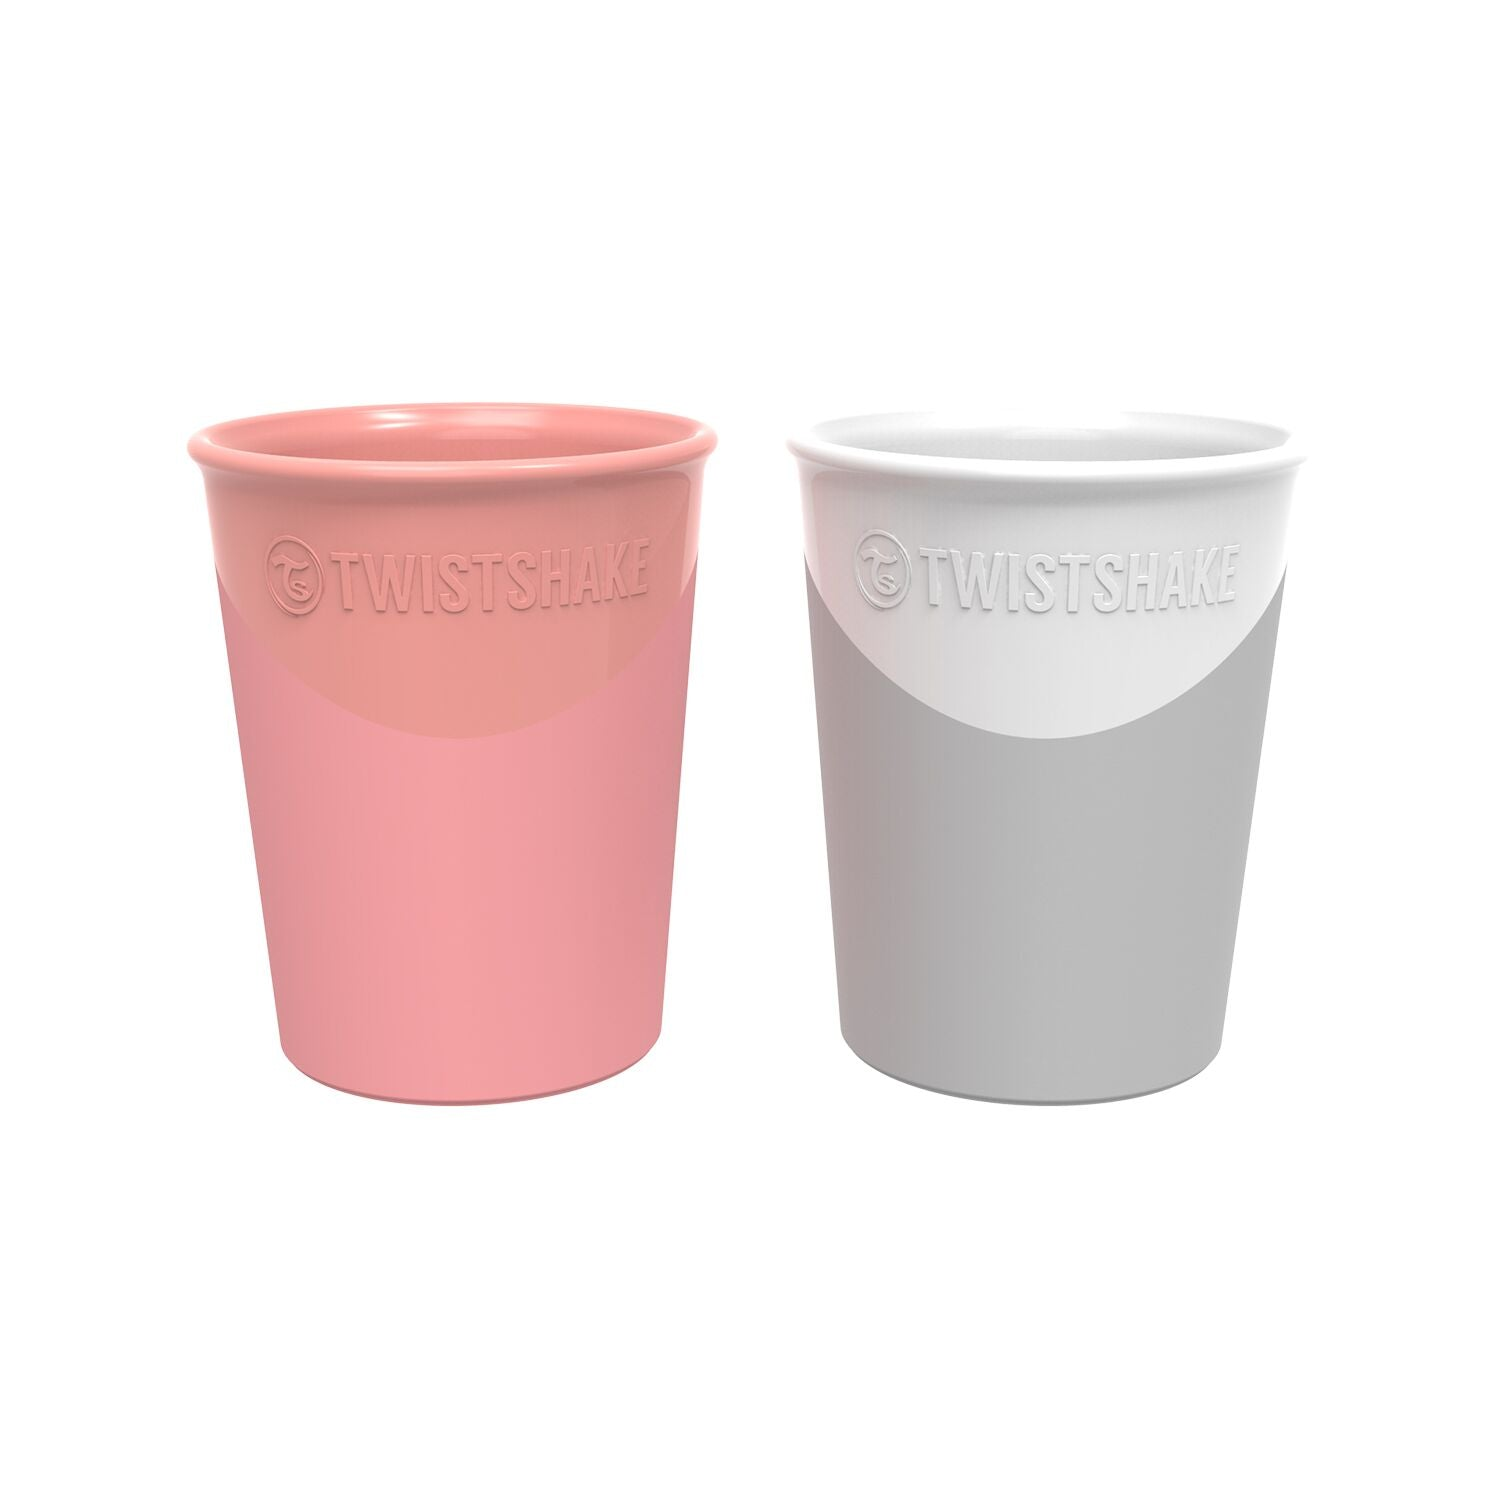 Twistshake Becher 2er Set - Pastel Peach/White